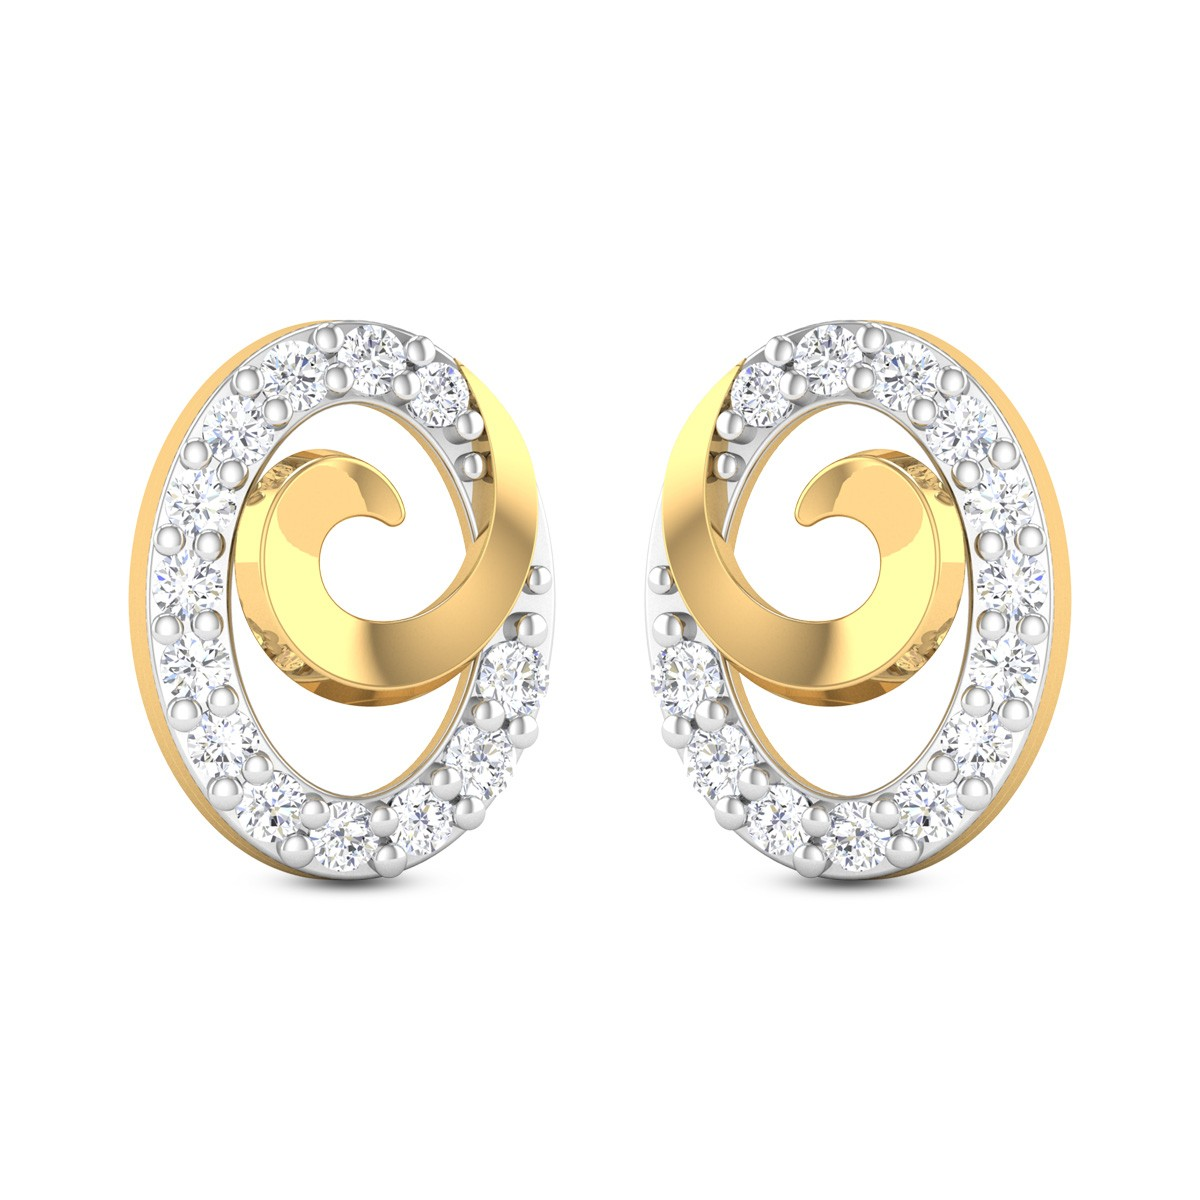 Keelay Diamond Earrings